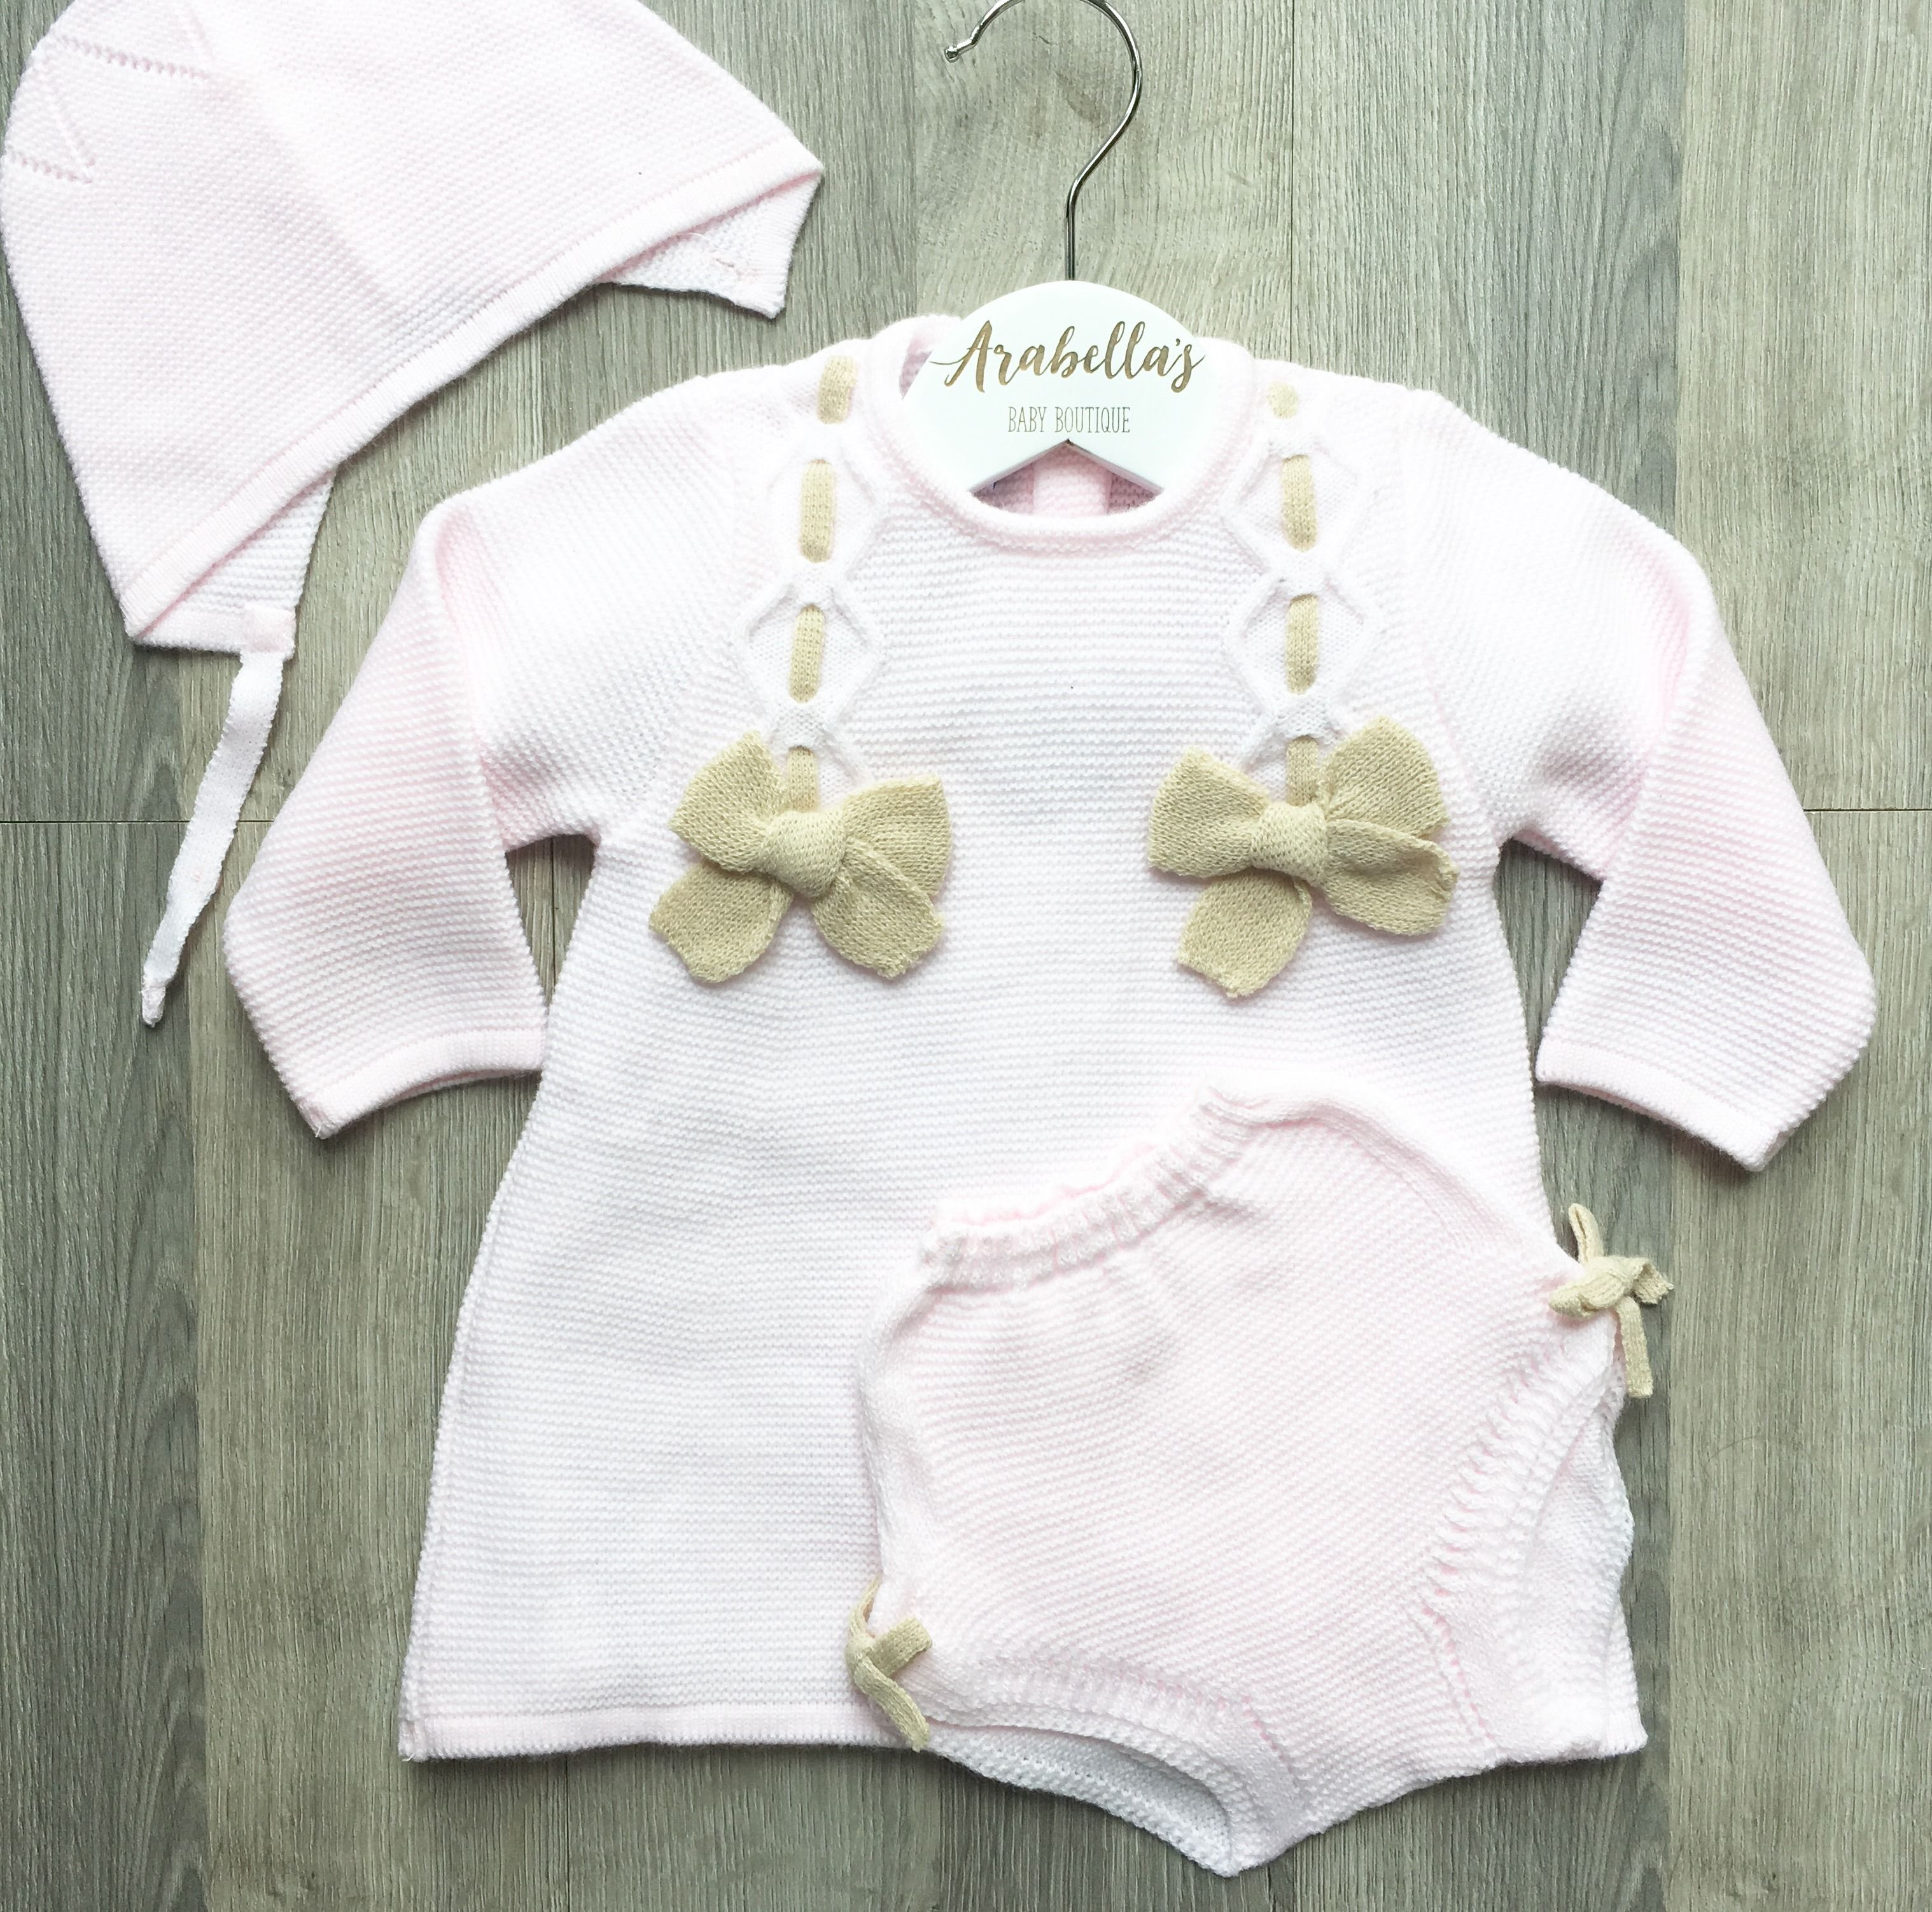 Cha o baby spanish baby girls 3 piece knitted jam pant set with